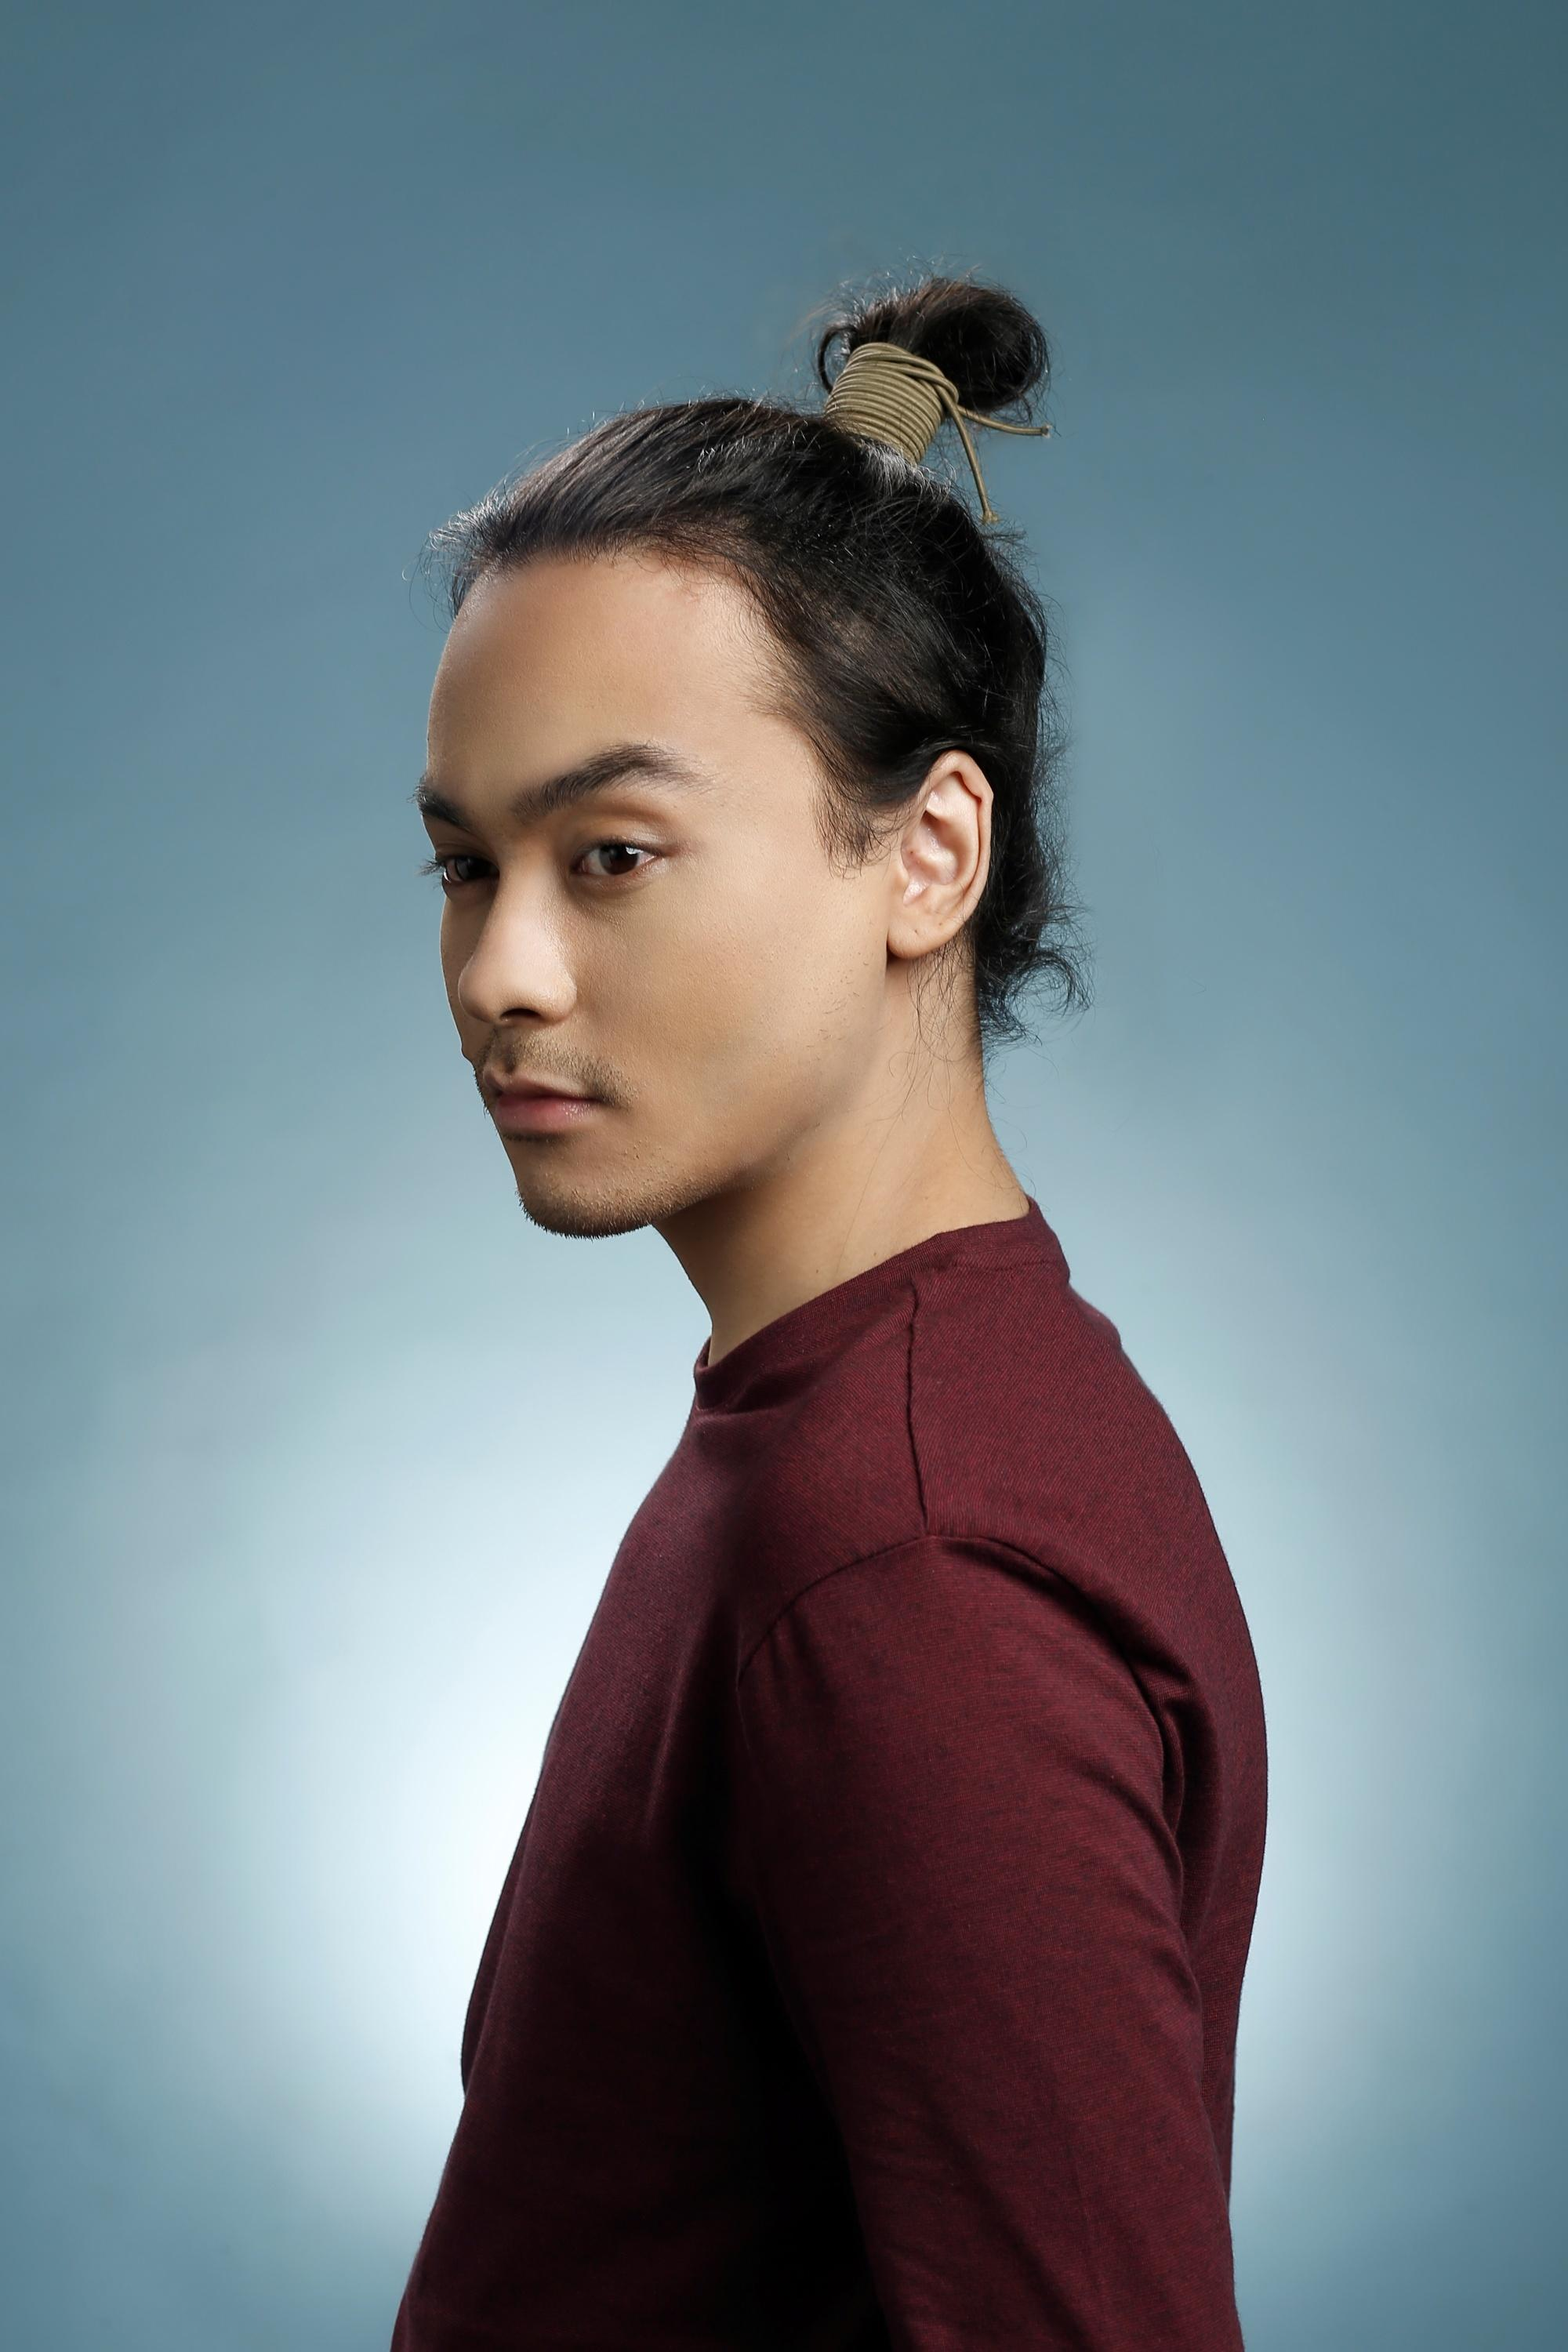 Upgrade your messy bun with these cute updo hairstyles. Asian Hairstyles Men Can Try In 2020 All Things Hair